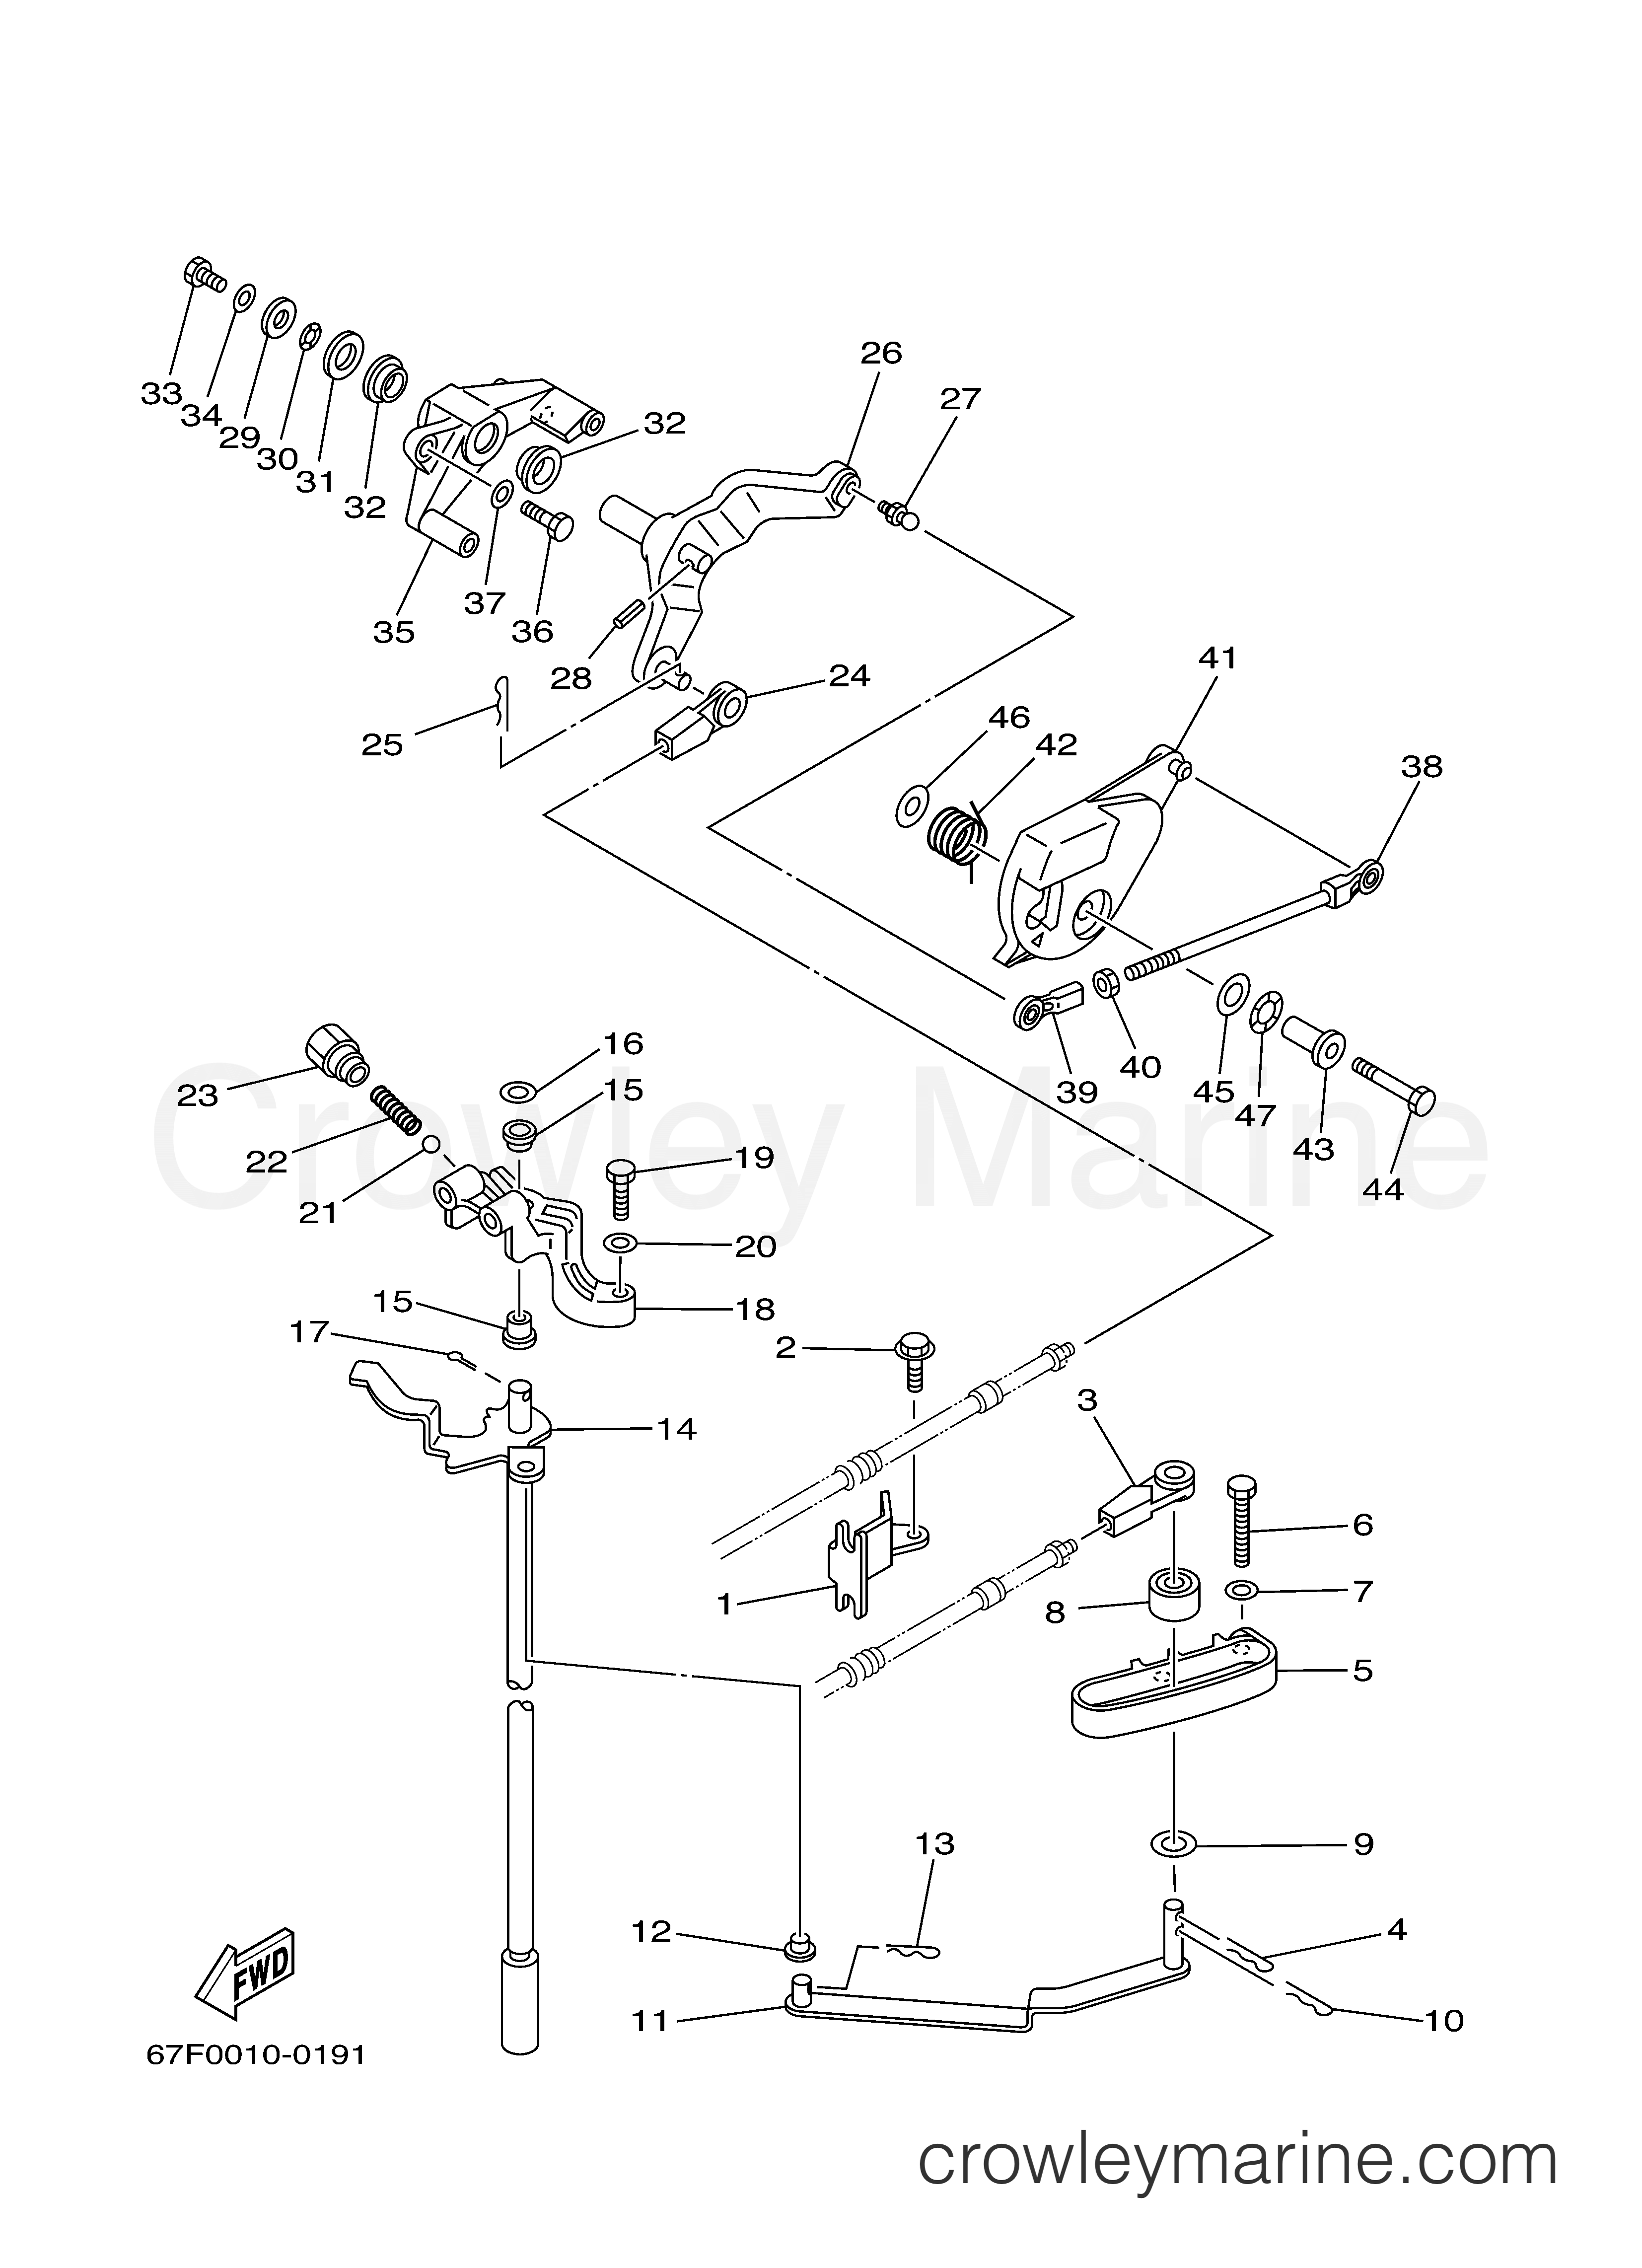 Yamaha Outboard Cooling System Diagram - Wiring Diagrams Dock